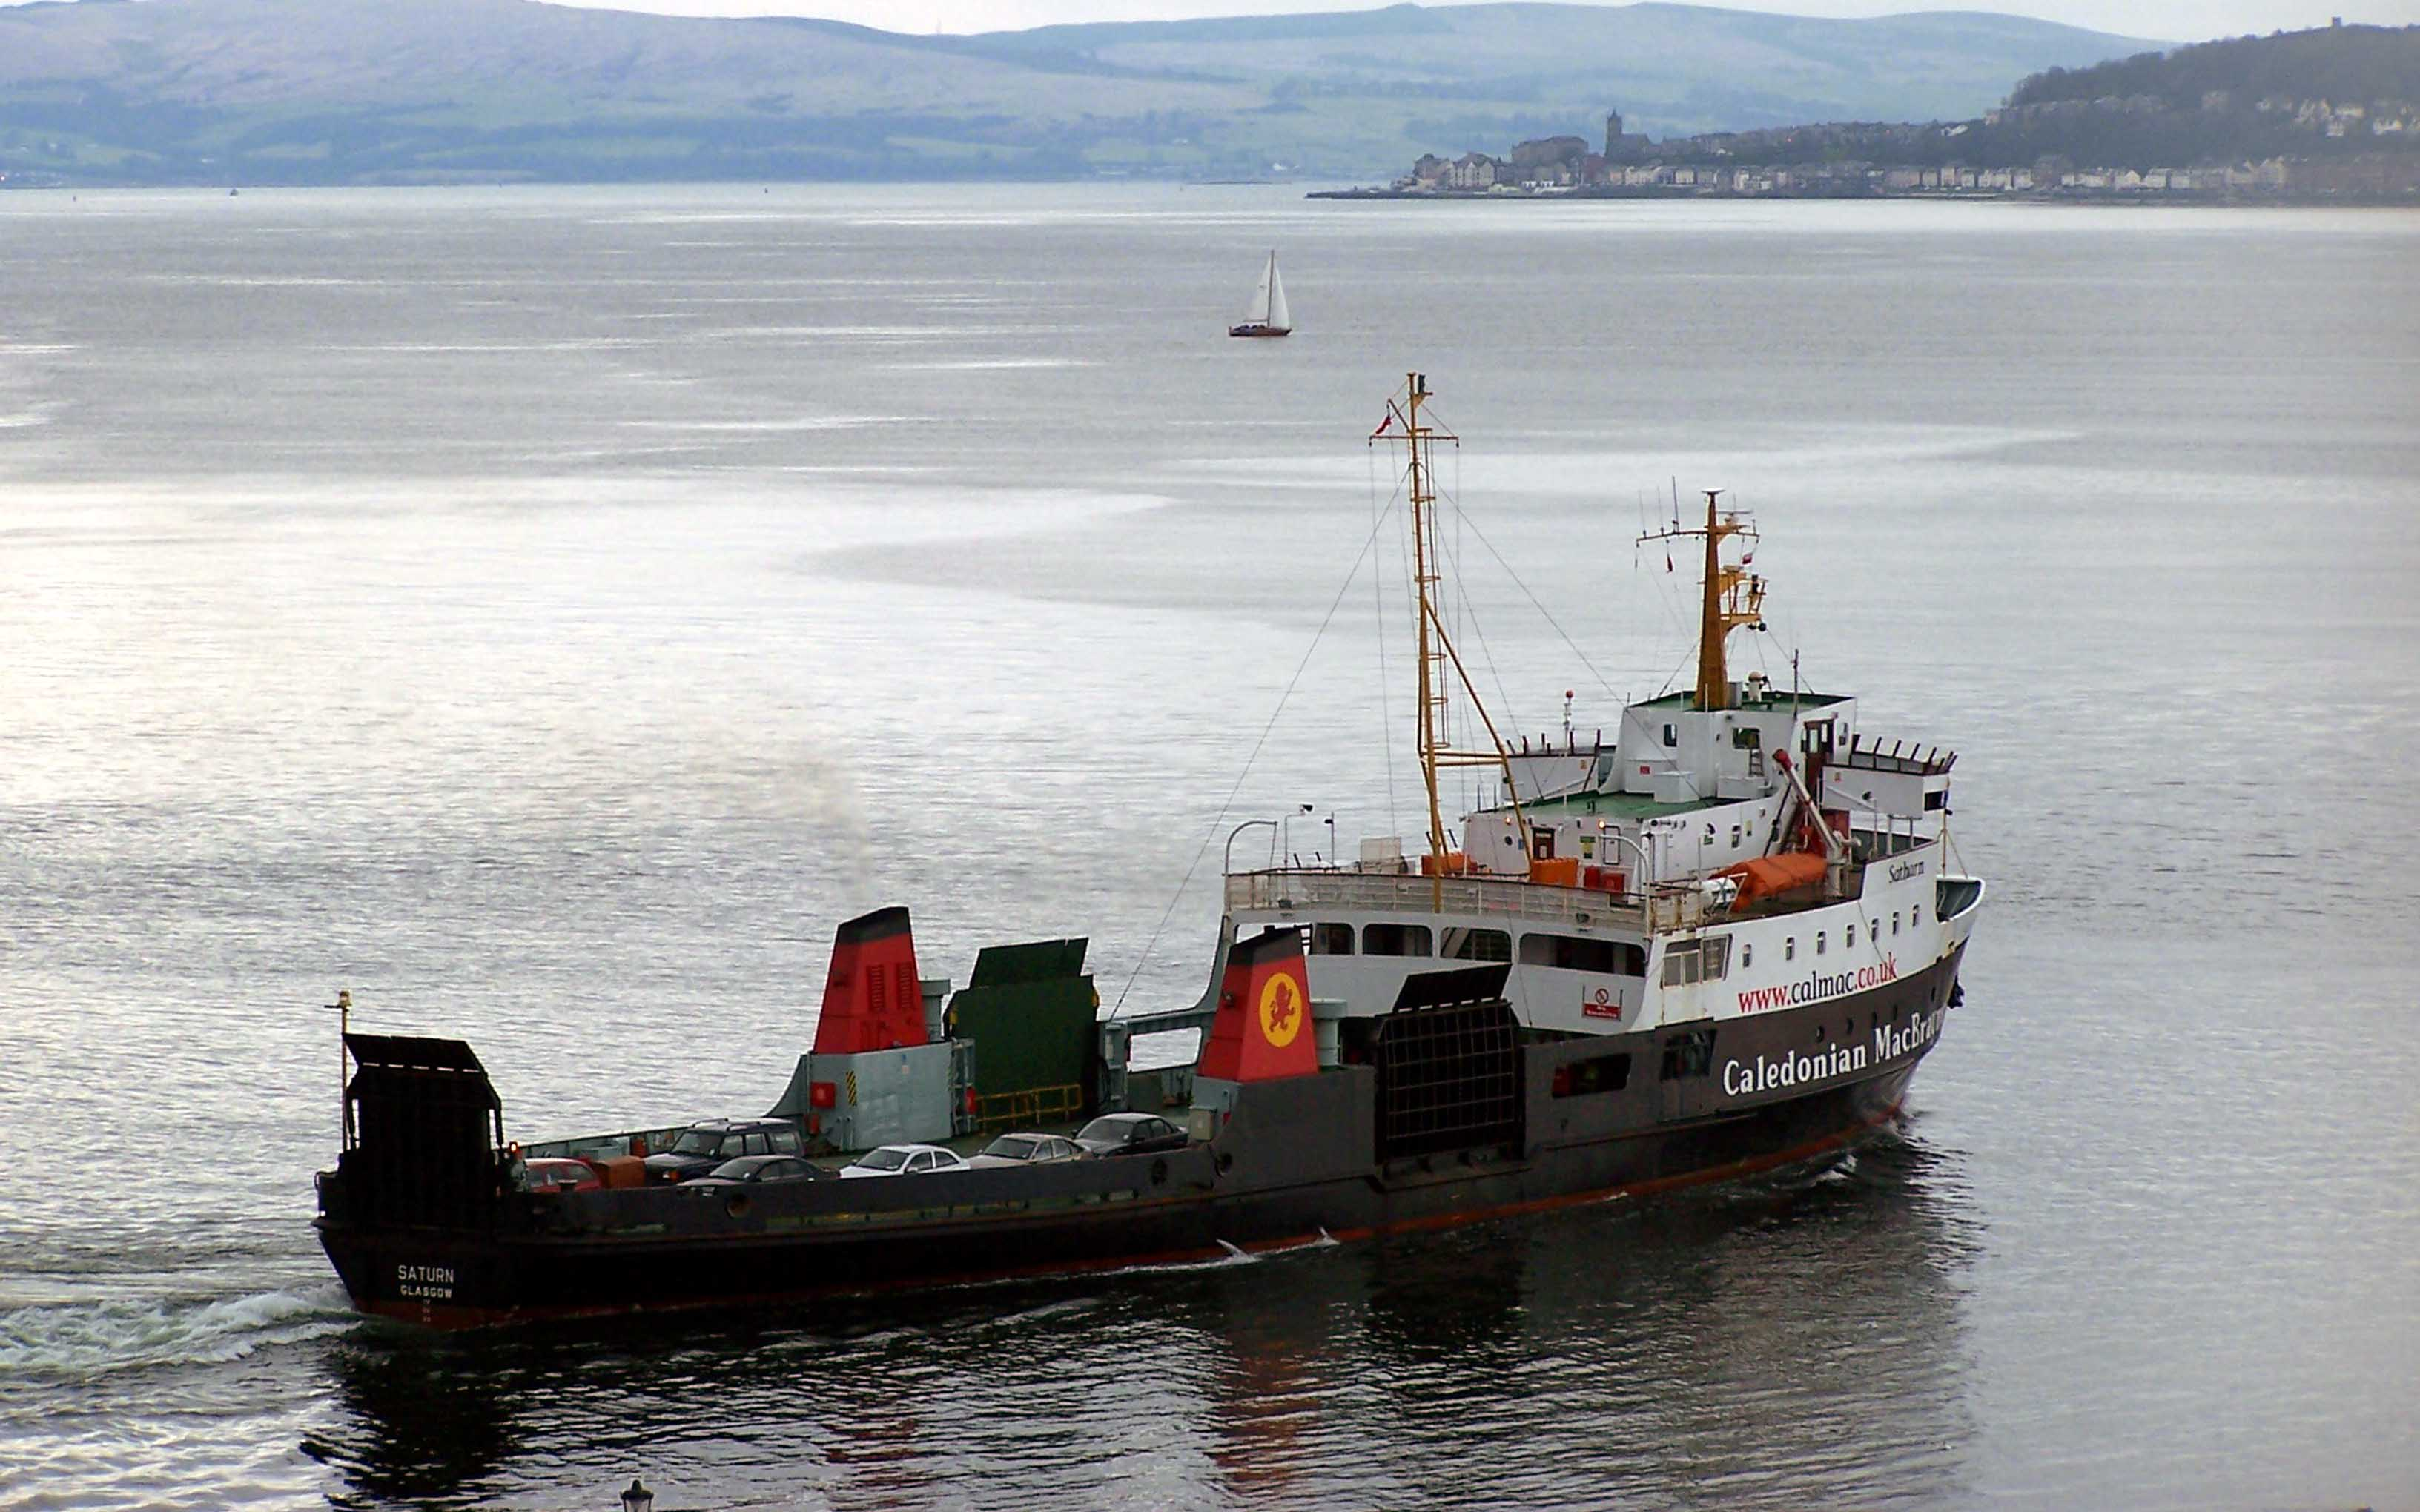 Saturn in the last days of the vehicle ferry (Ships of CalMac)